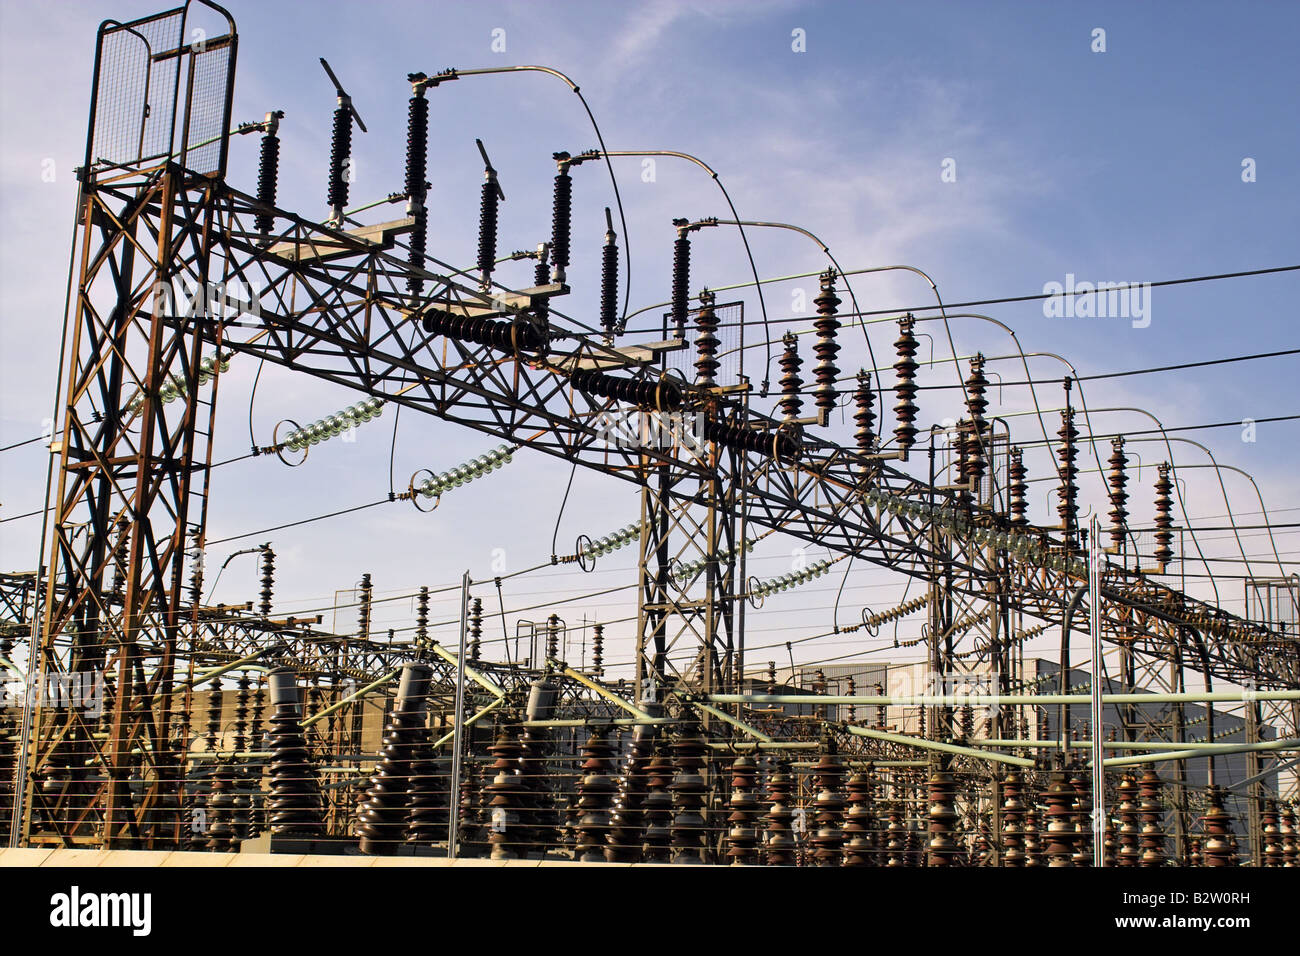 high tension electrical cabling, with insulators - Stock Image